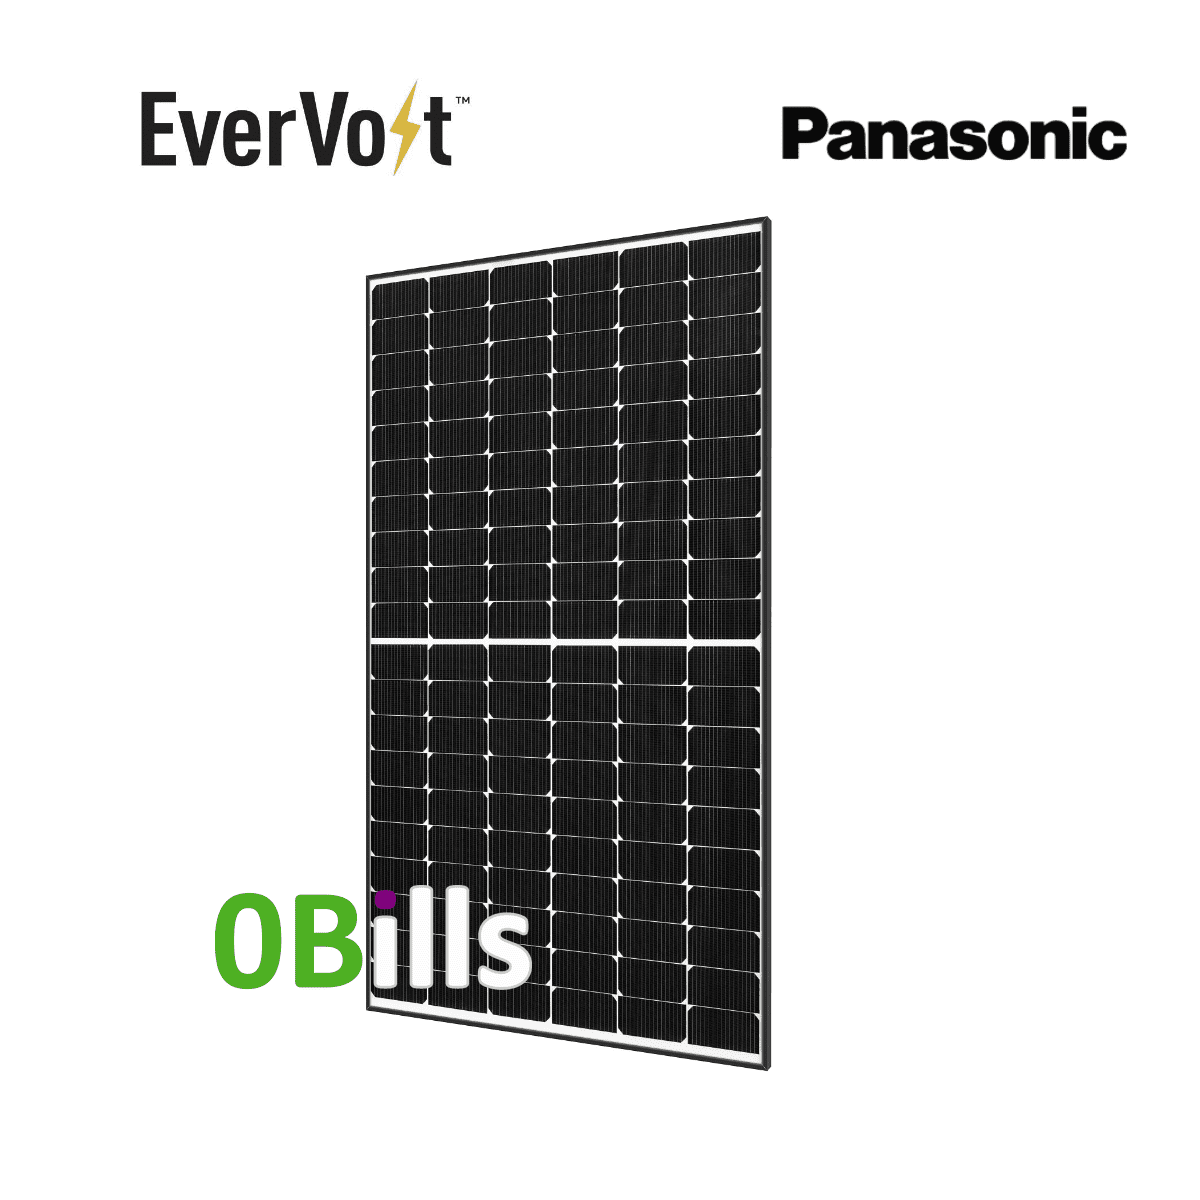 Panasonic EverVolt EVPV360 360W Solar Panel for Sale